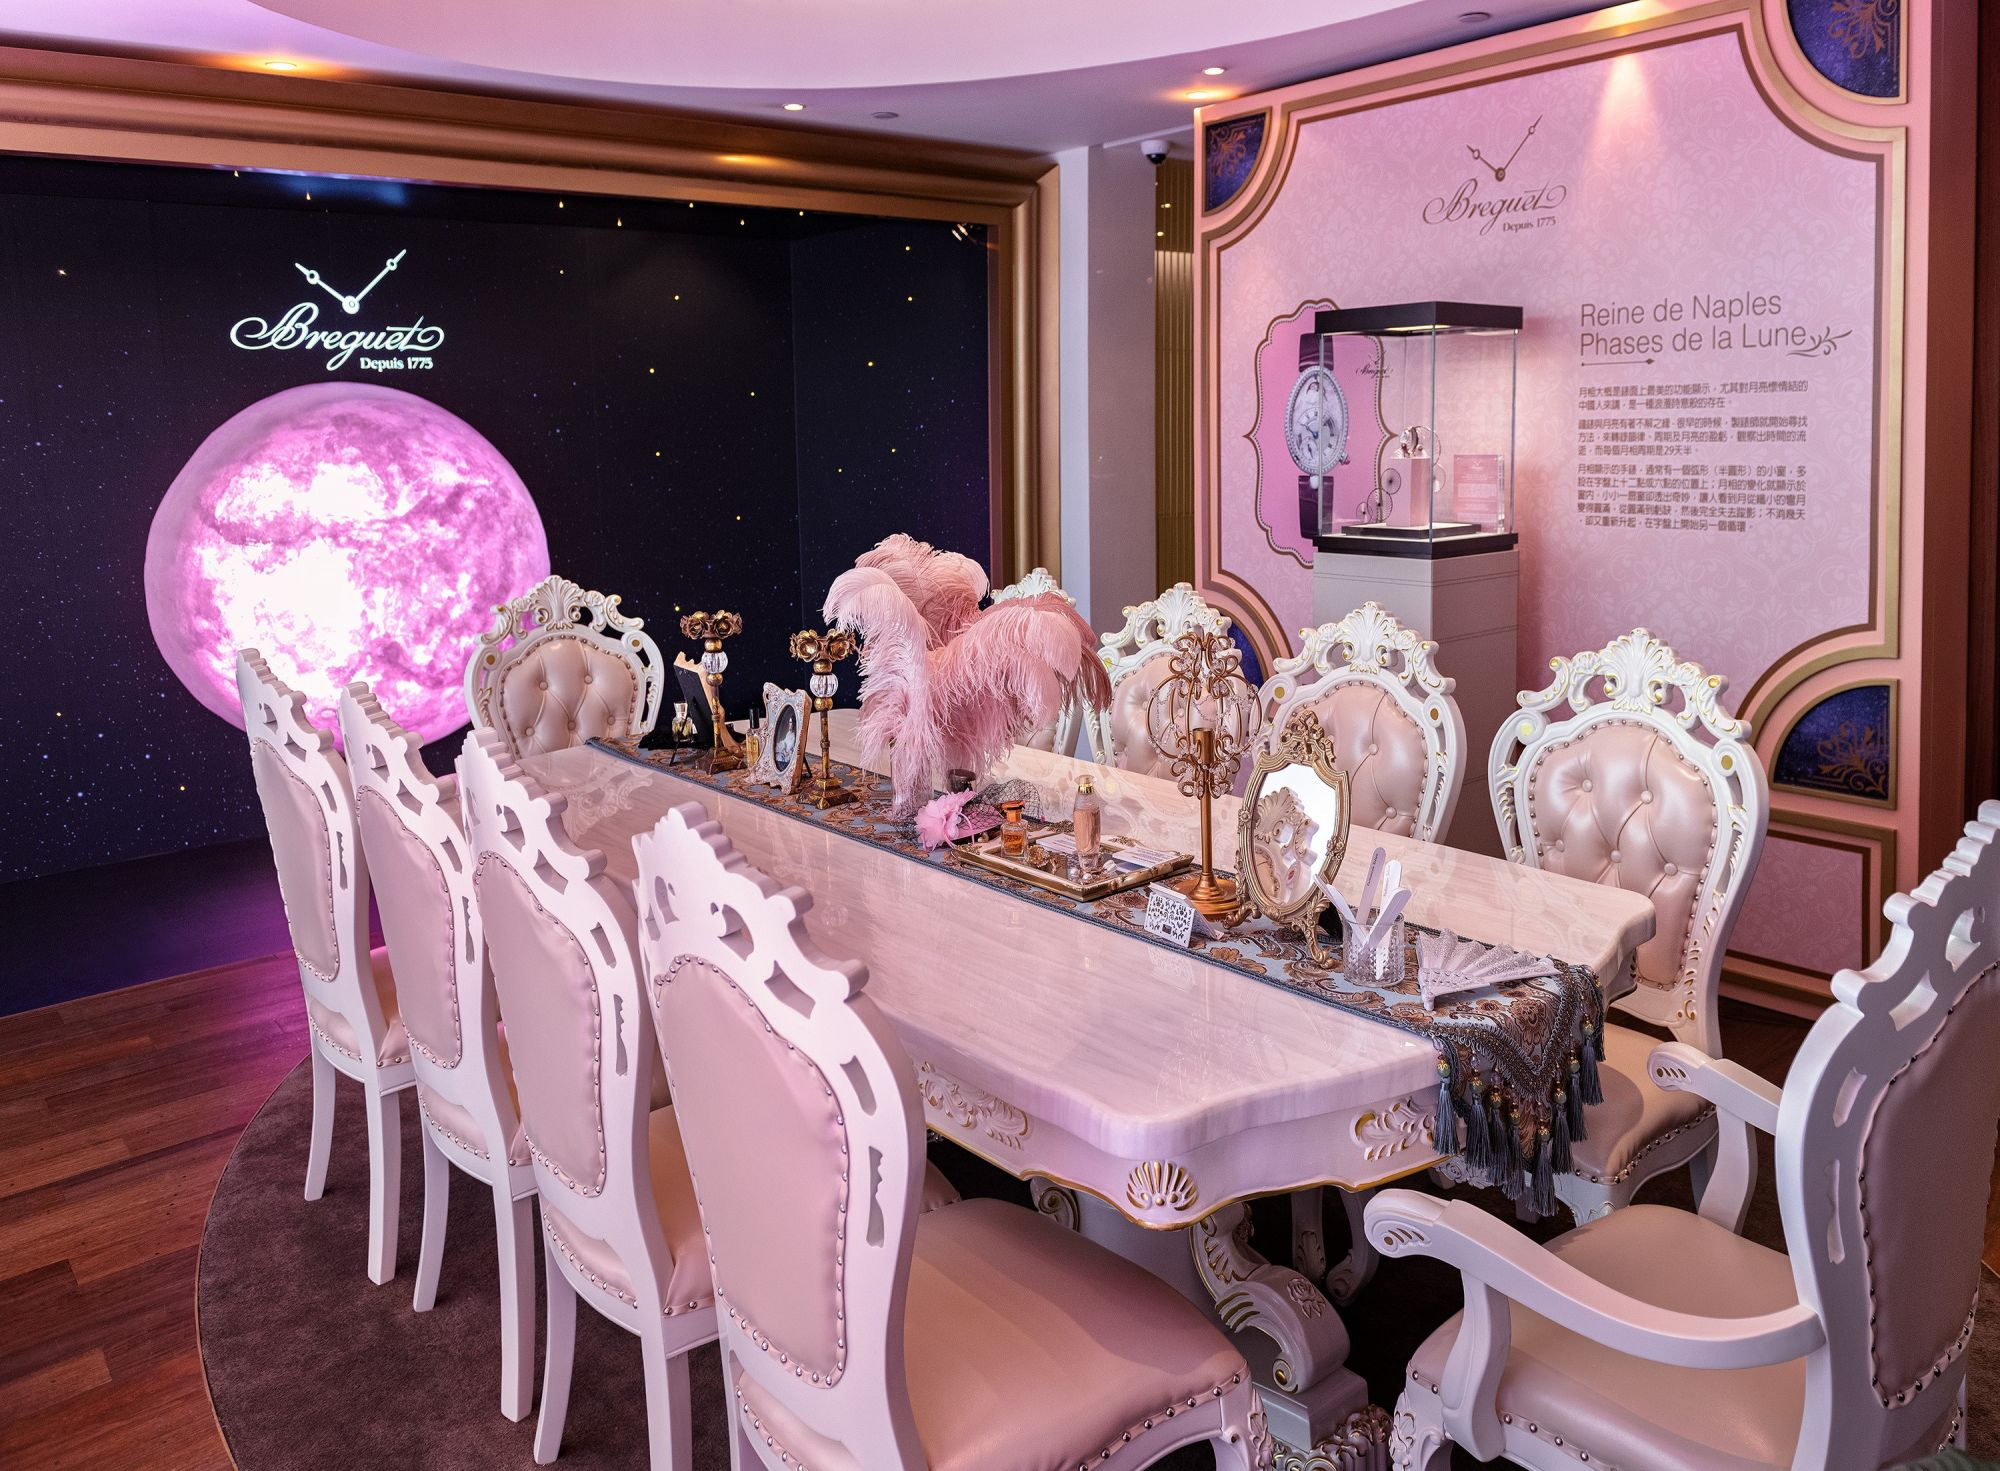 Breguet Promises The Royal Treatment For Valentine's Day